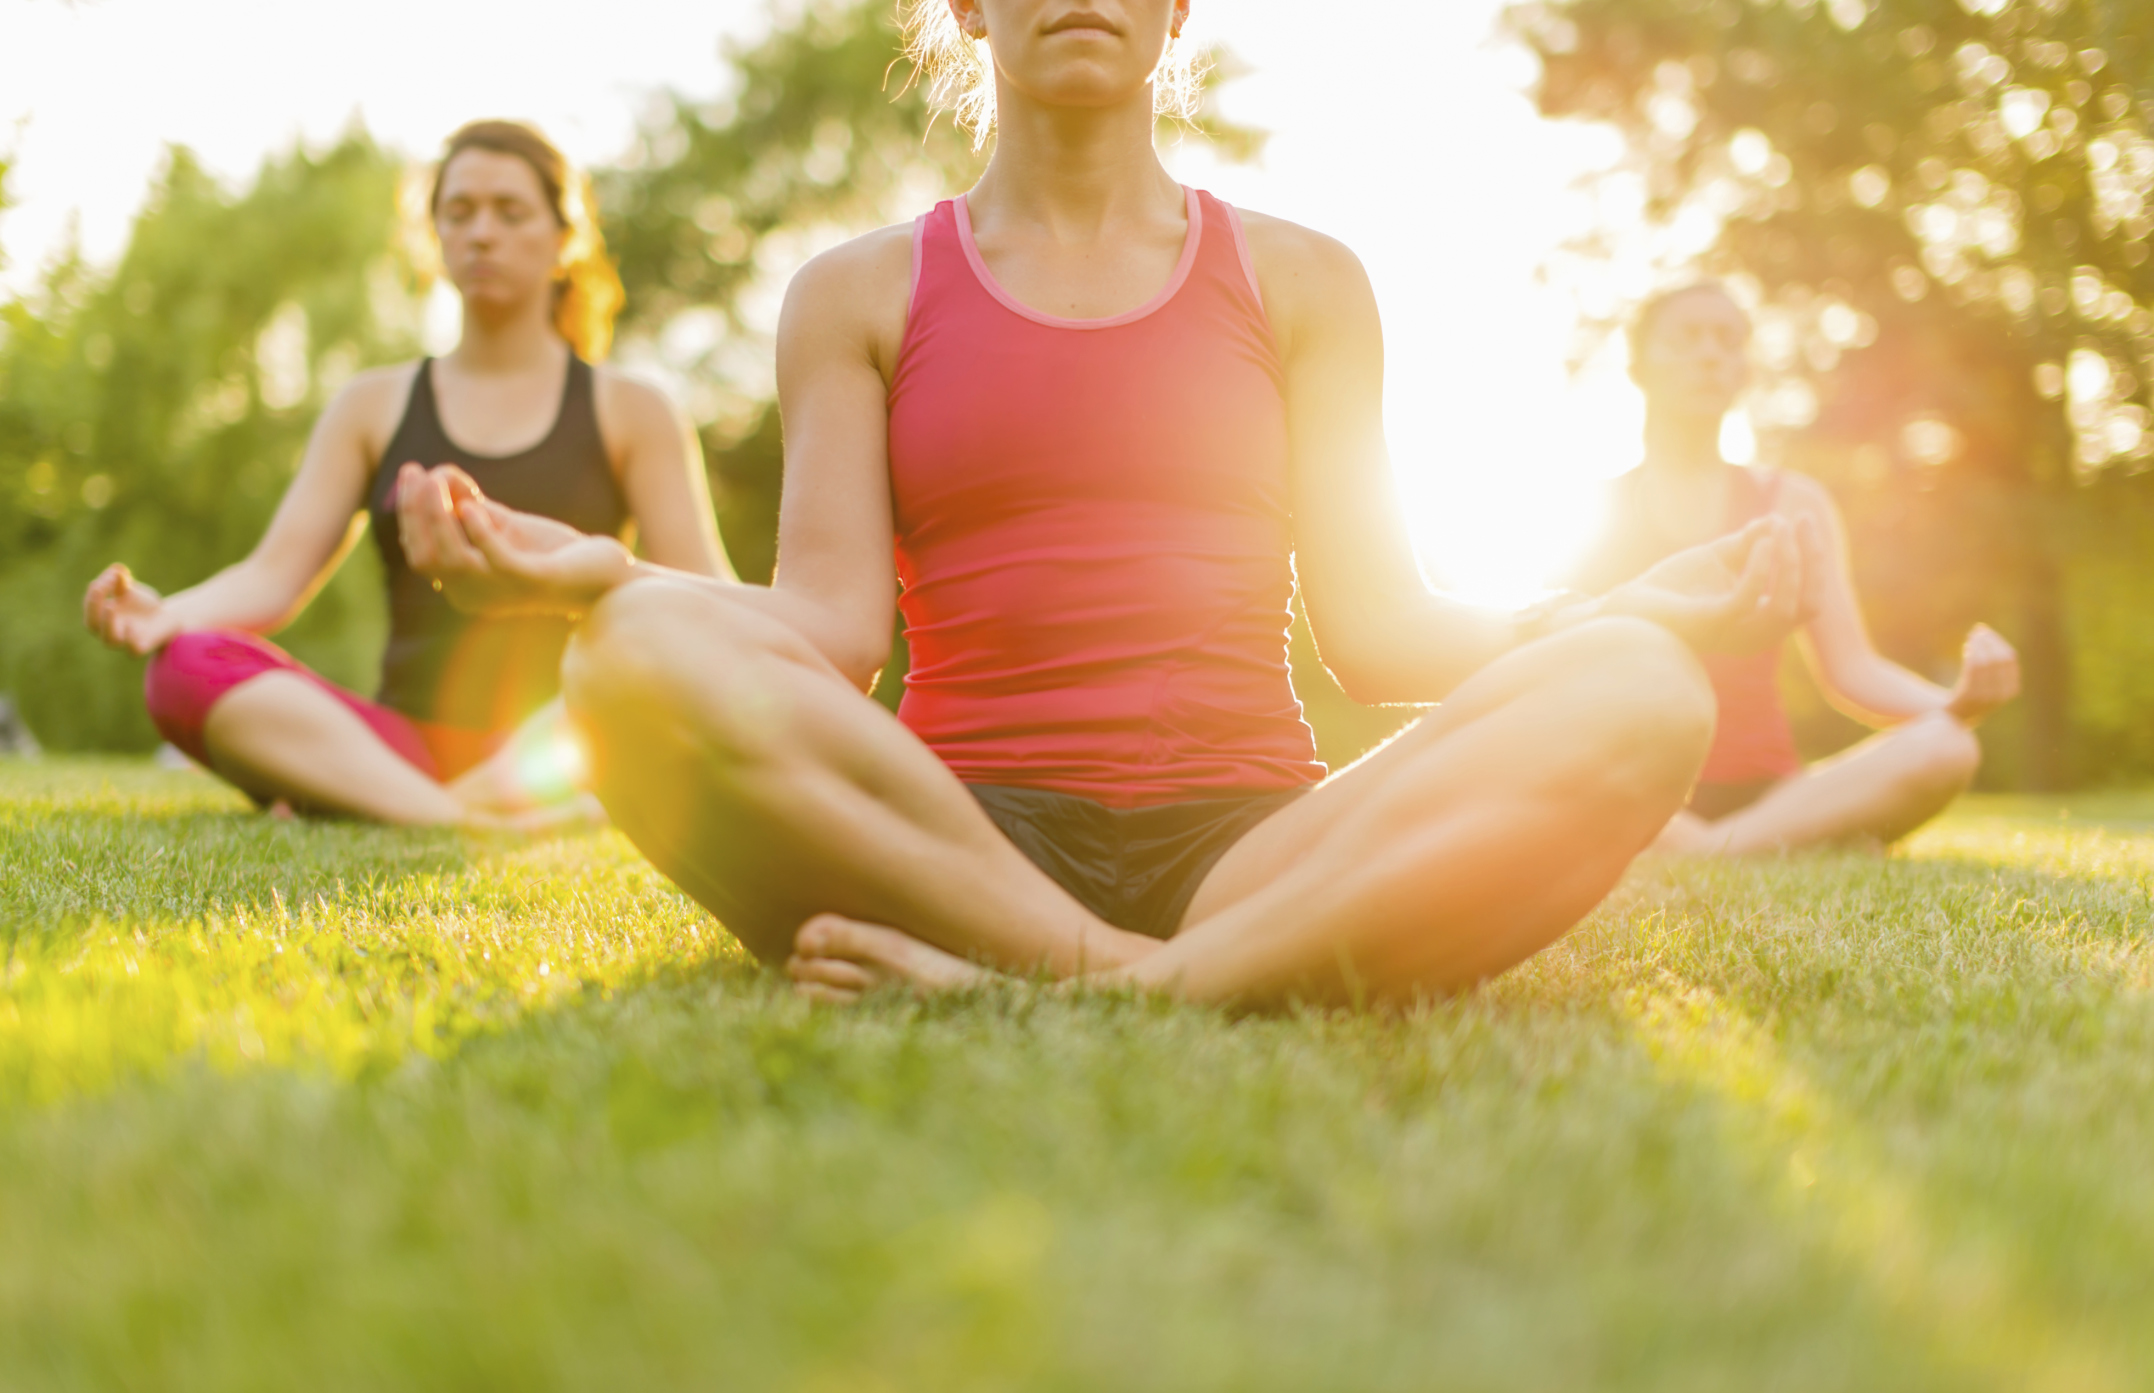 Research: Meditation does more than calm your mind, it changes your brain